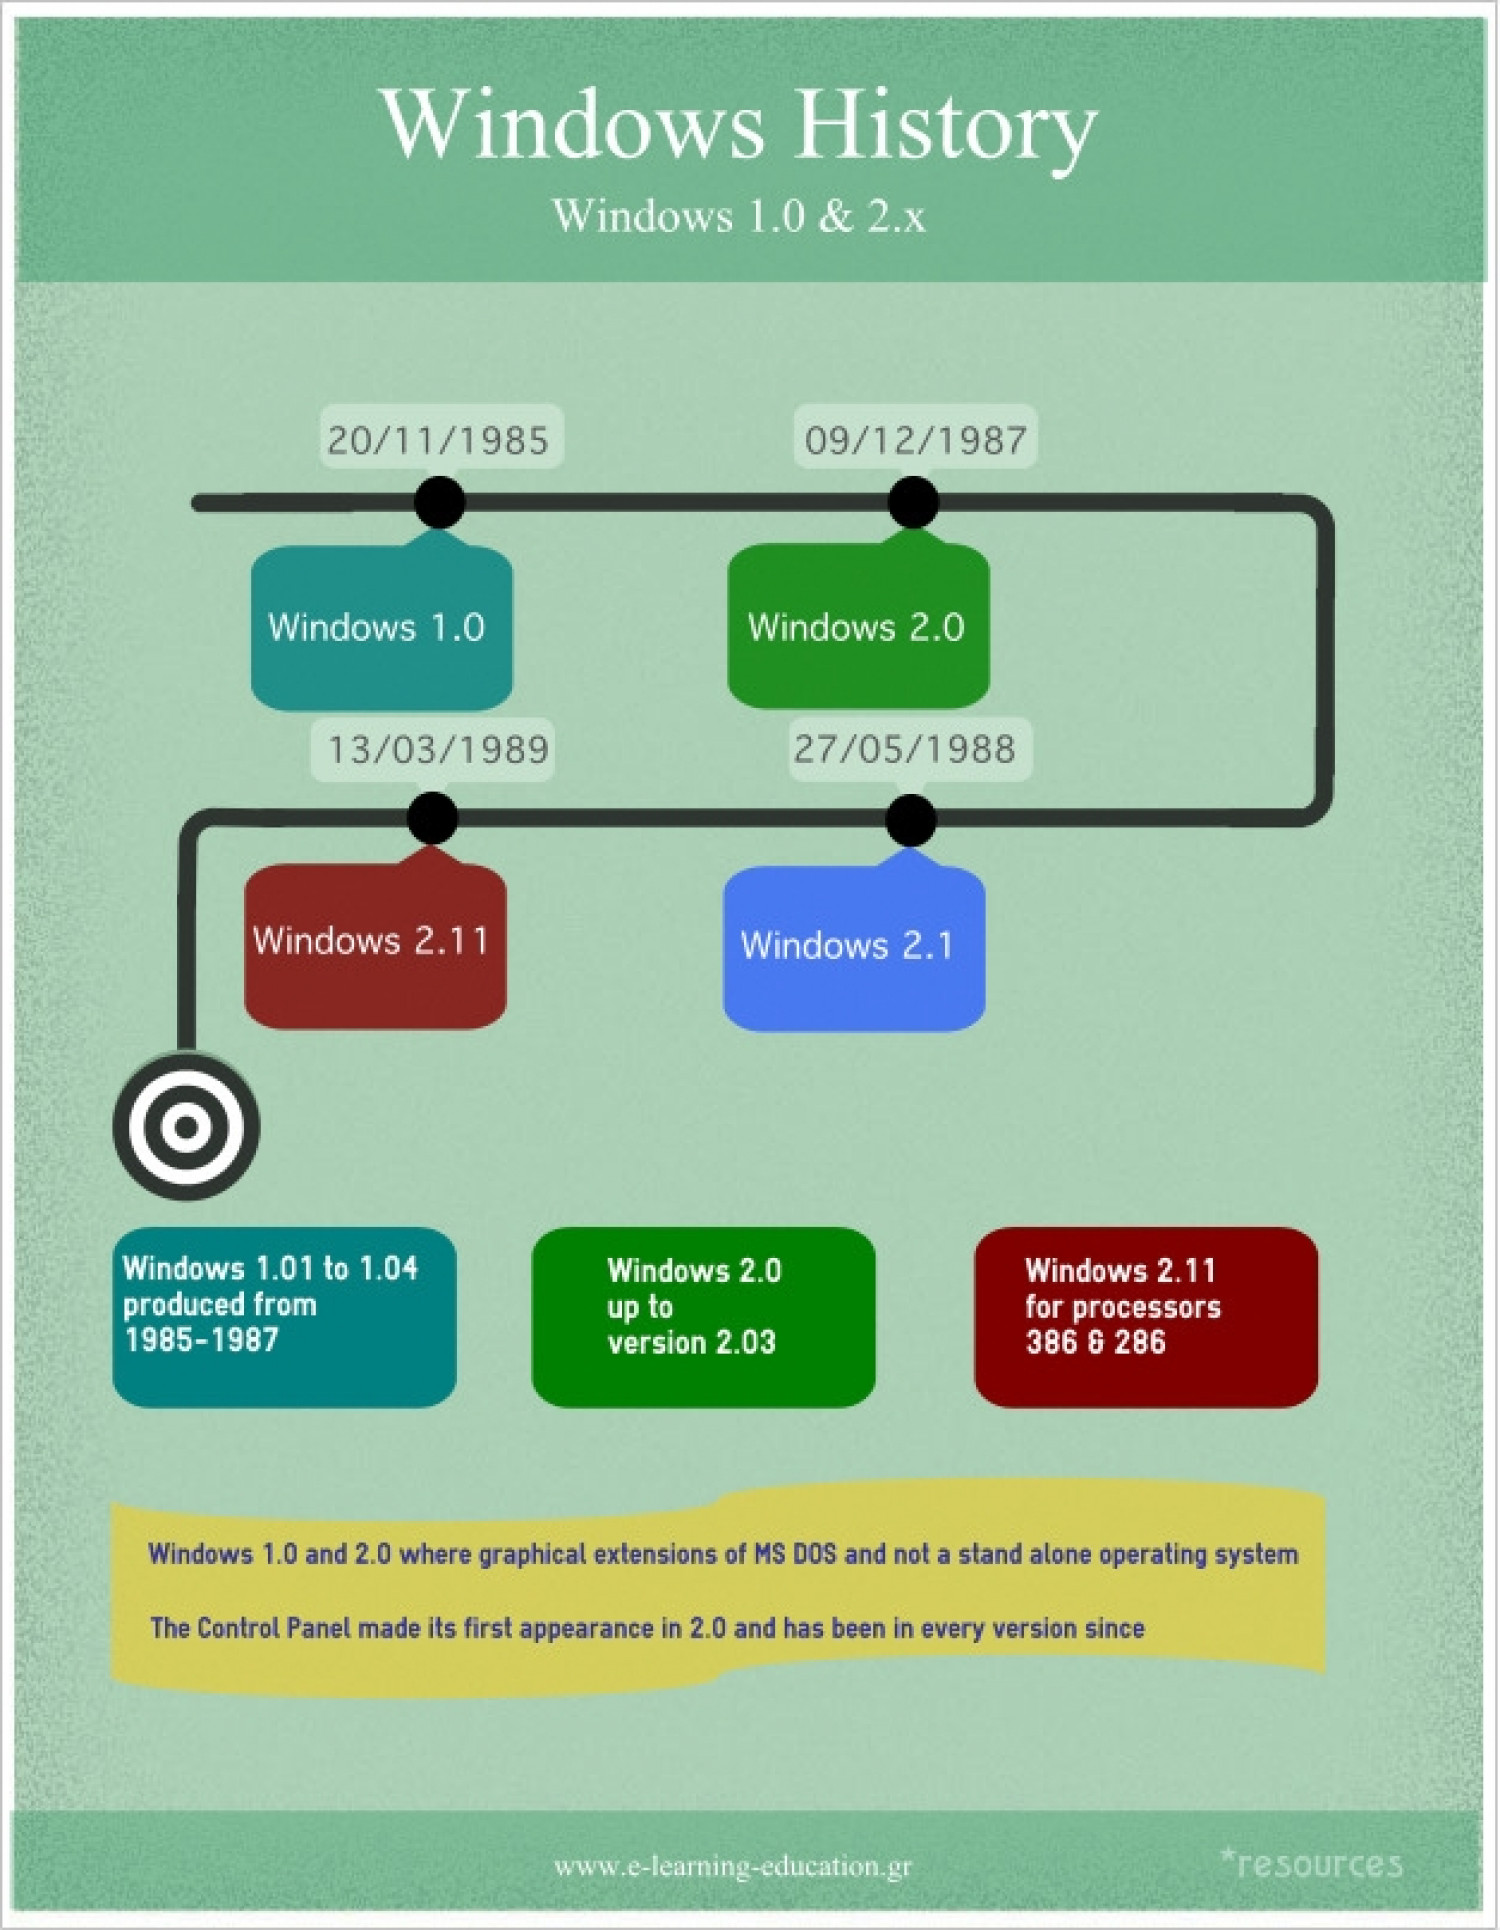 Windows History - Windows 1.0 & 2.x Infographic